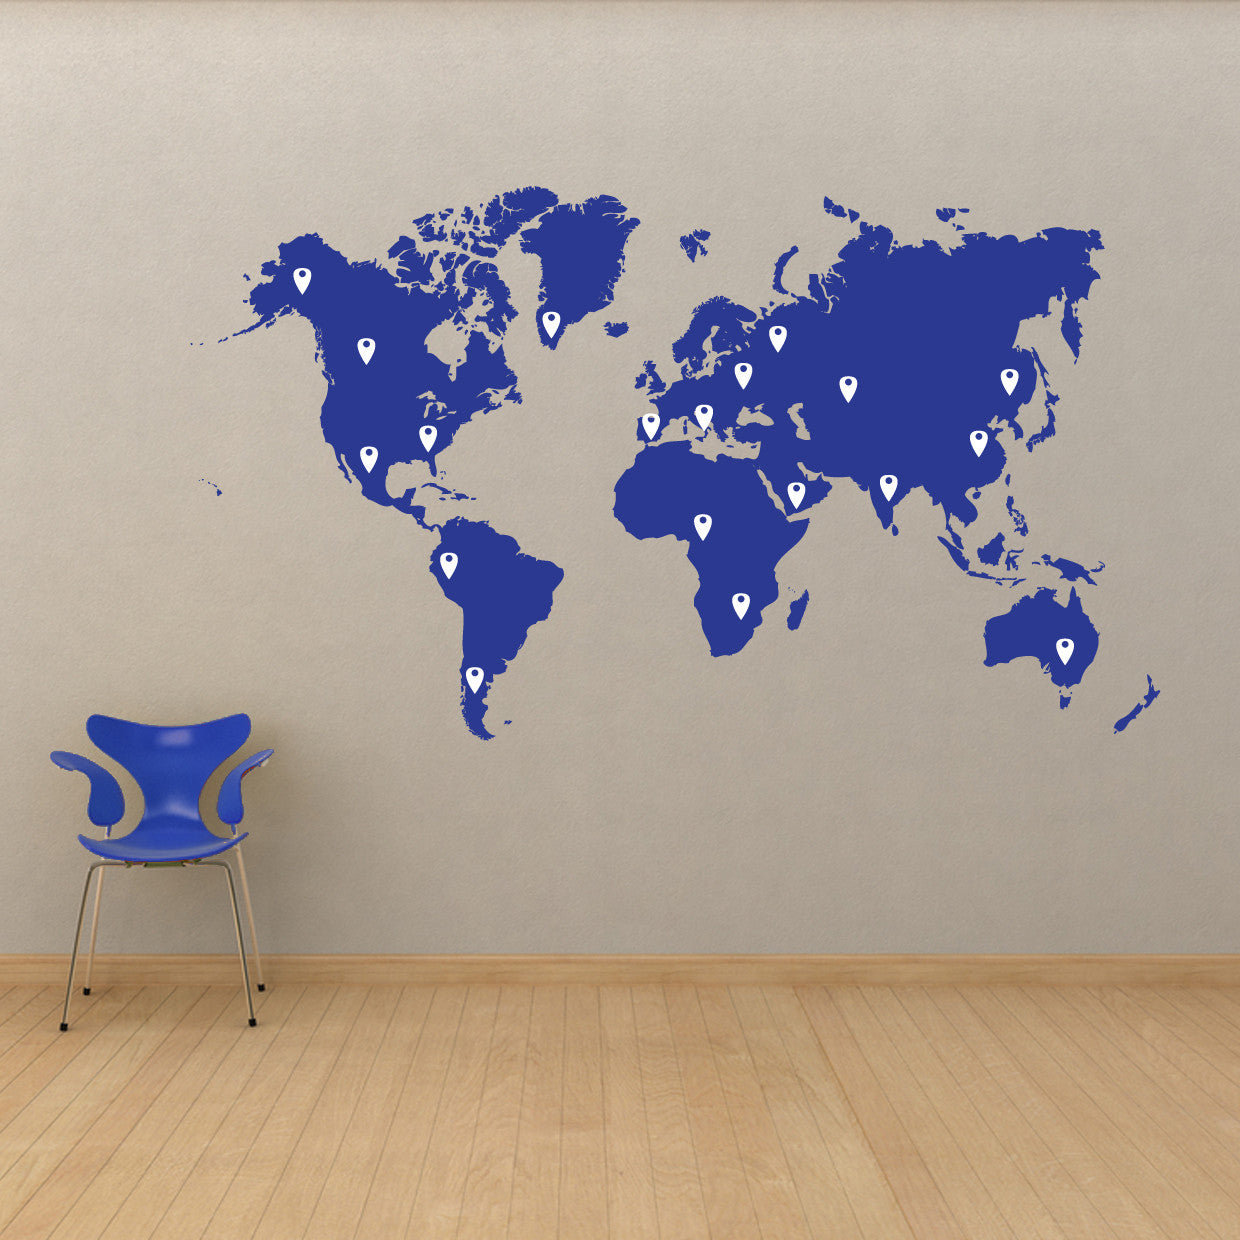 World map vinyl wall decal world map with pins world map pin drops decal 873 gumiabroncs Images